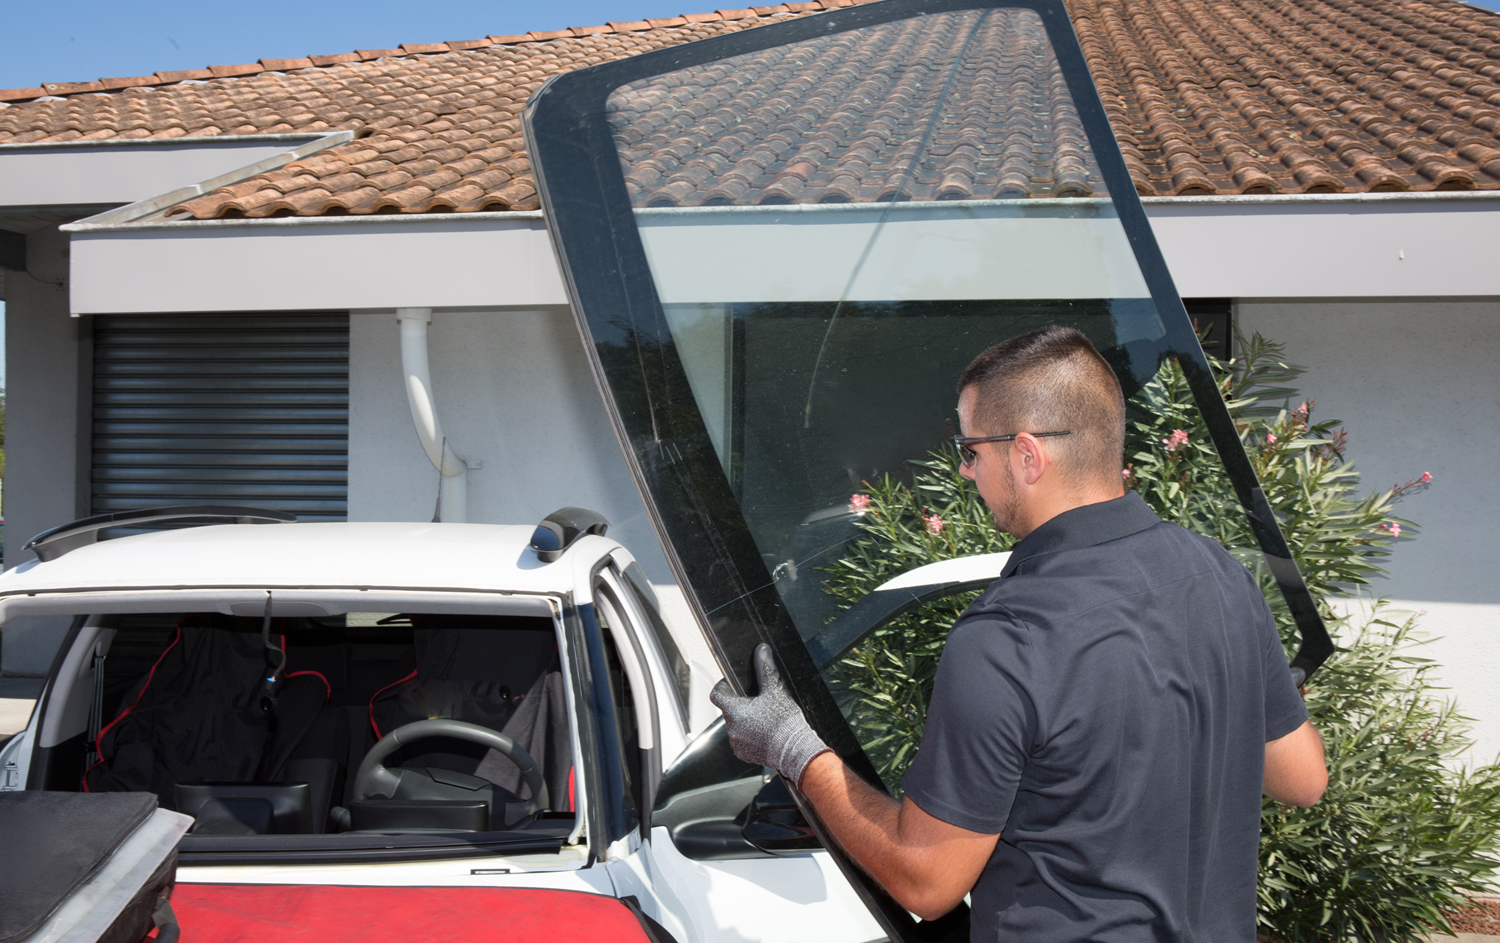 Technician Holding Windshield for Replacement on Car in Mesa AZ